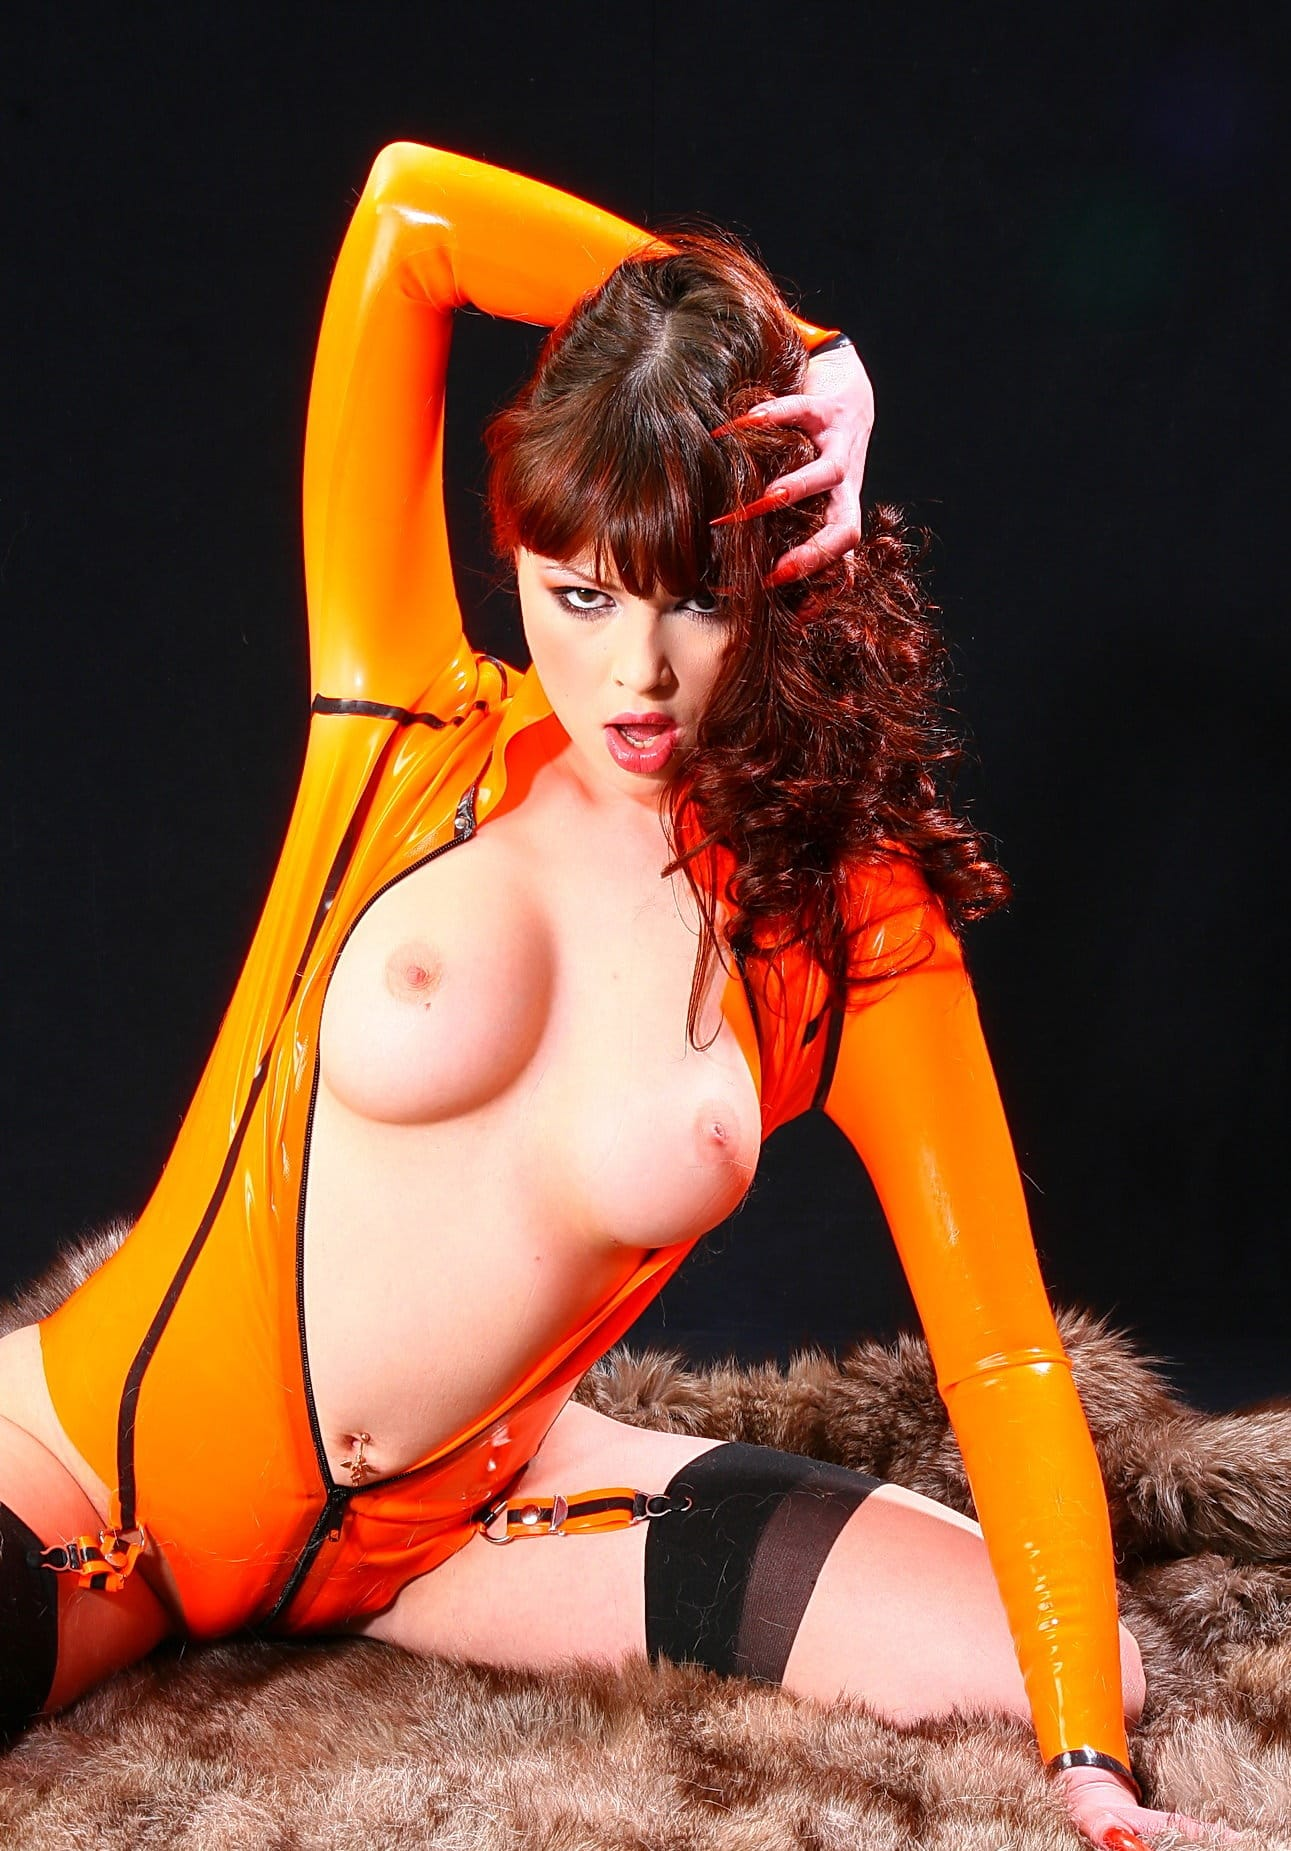 latex-heaven-naughty-babe-in-orange-latex-suit